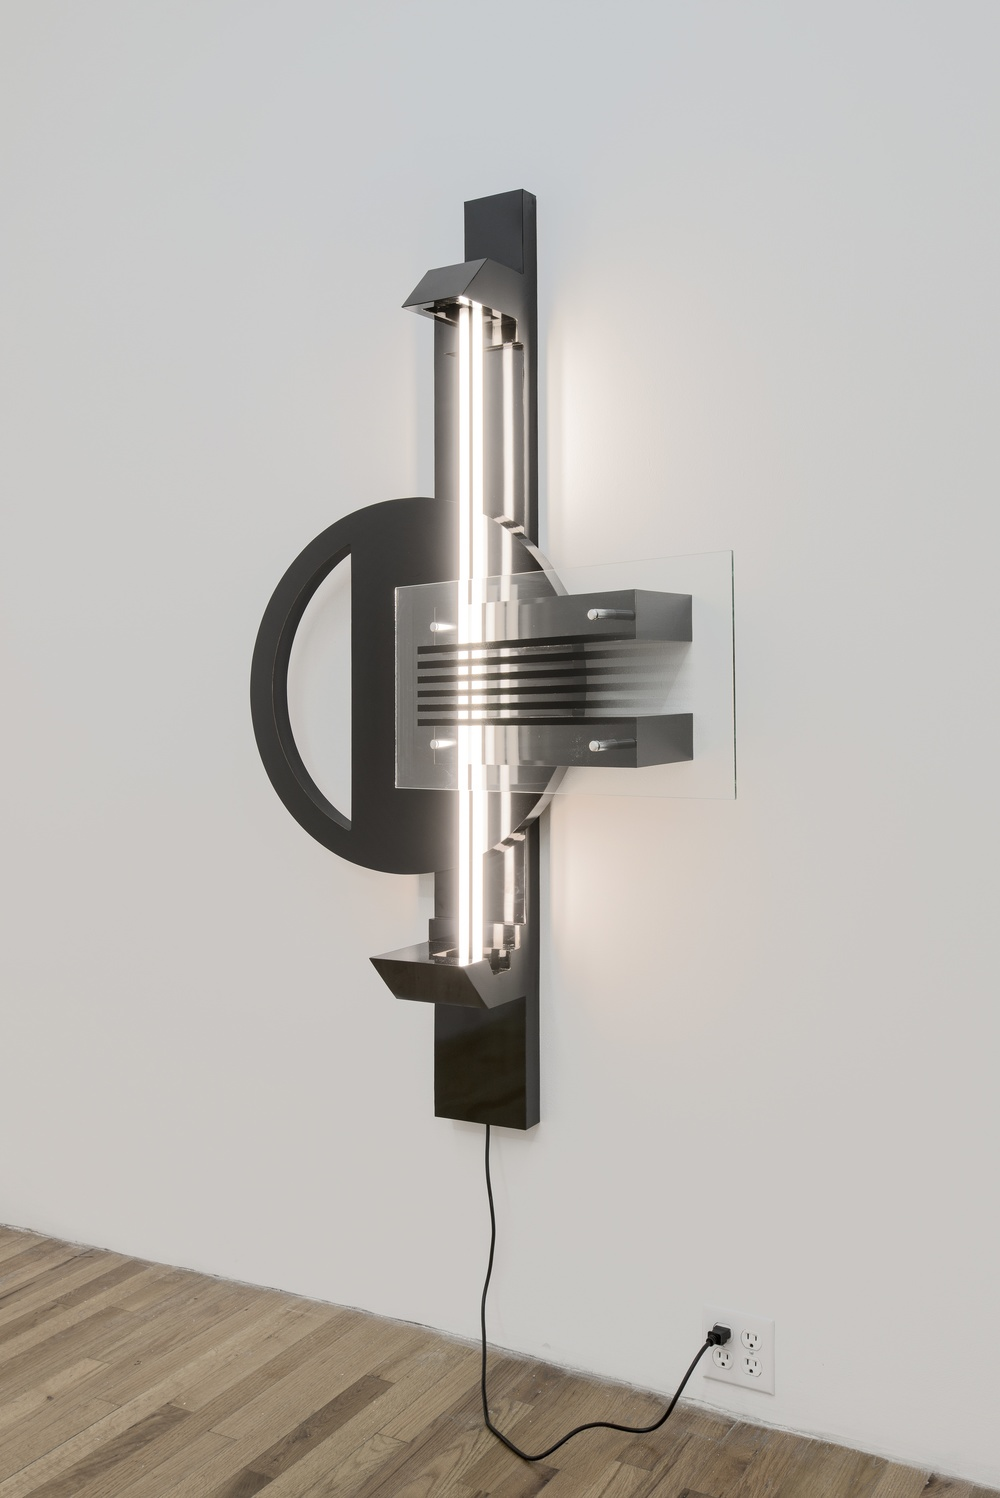 Ryan Lauderdale  Black Lamp   2014 Formica, wood, hardware, fluorescent, and spray paint on glass 65 x 40 x 12 in/ 165 x 101.6 x 30.5 cm